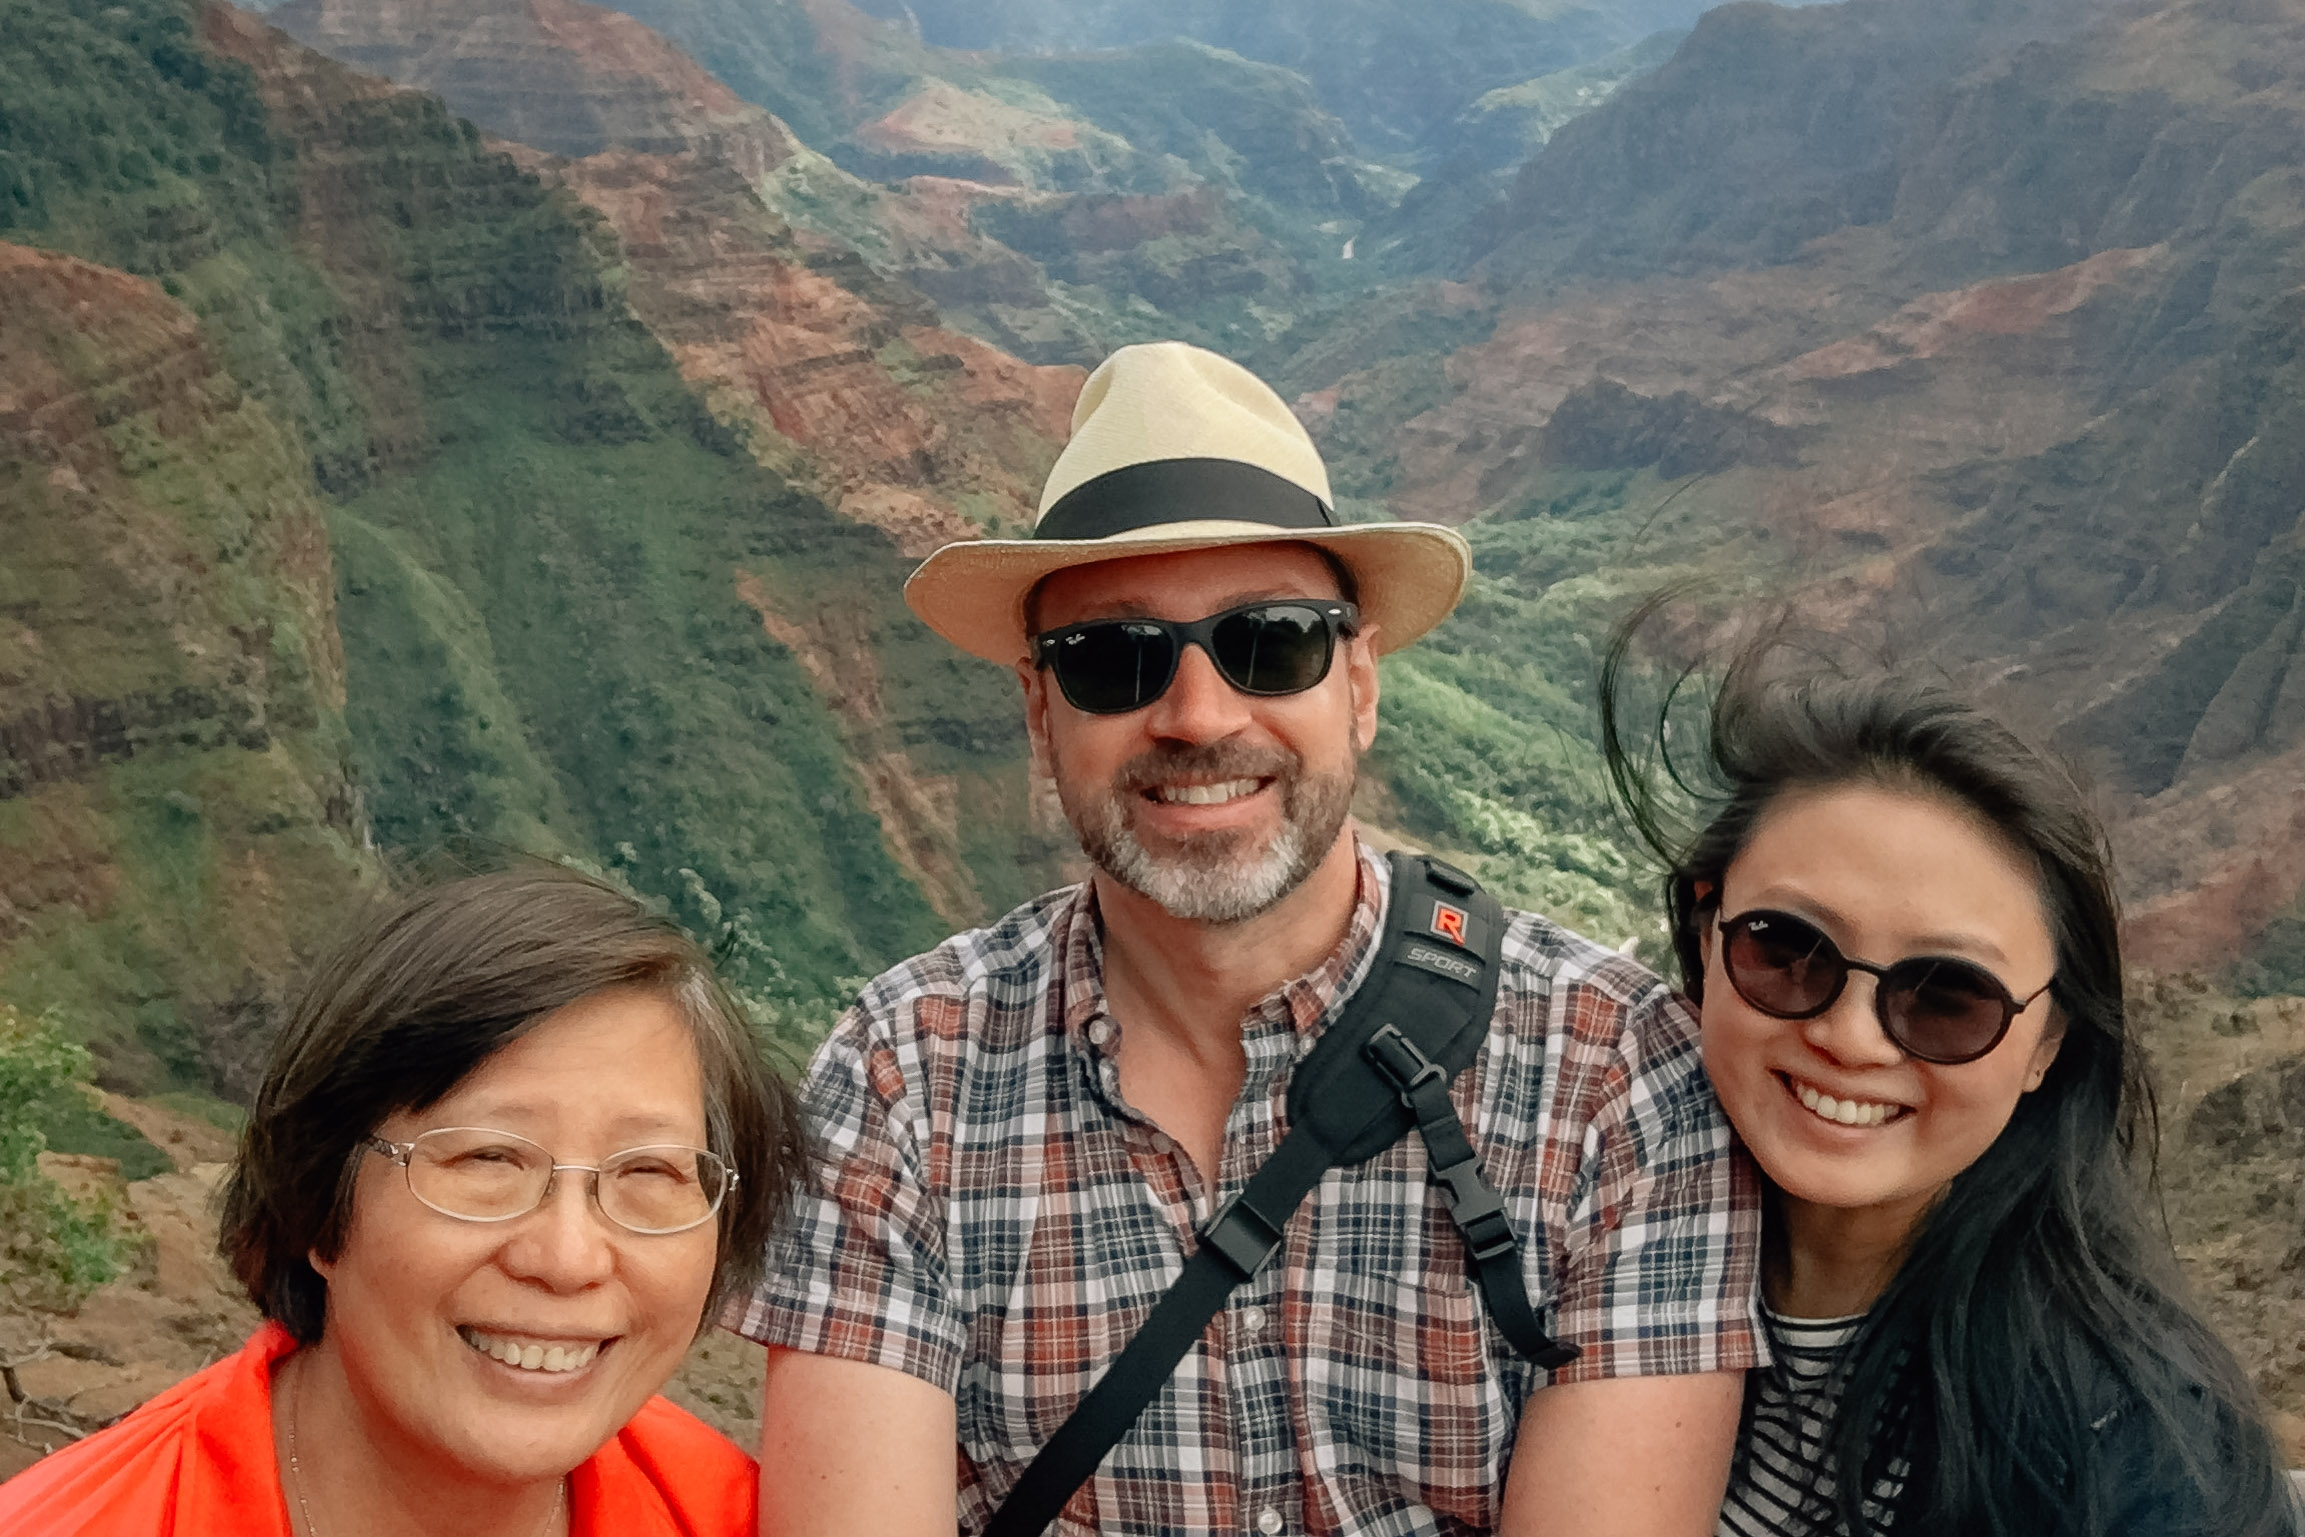 Deborah Kris and Jessica at Waimea Canyon